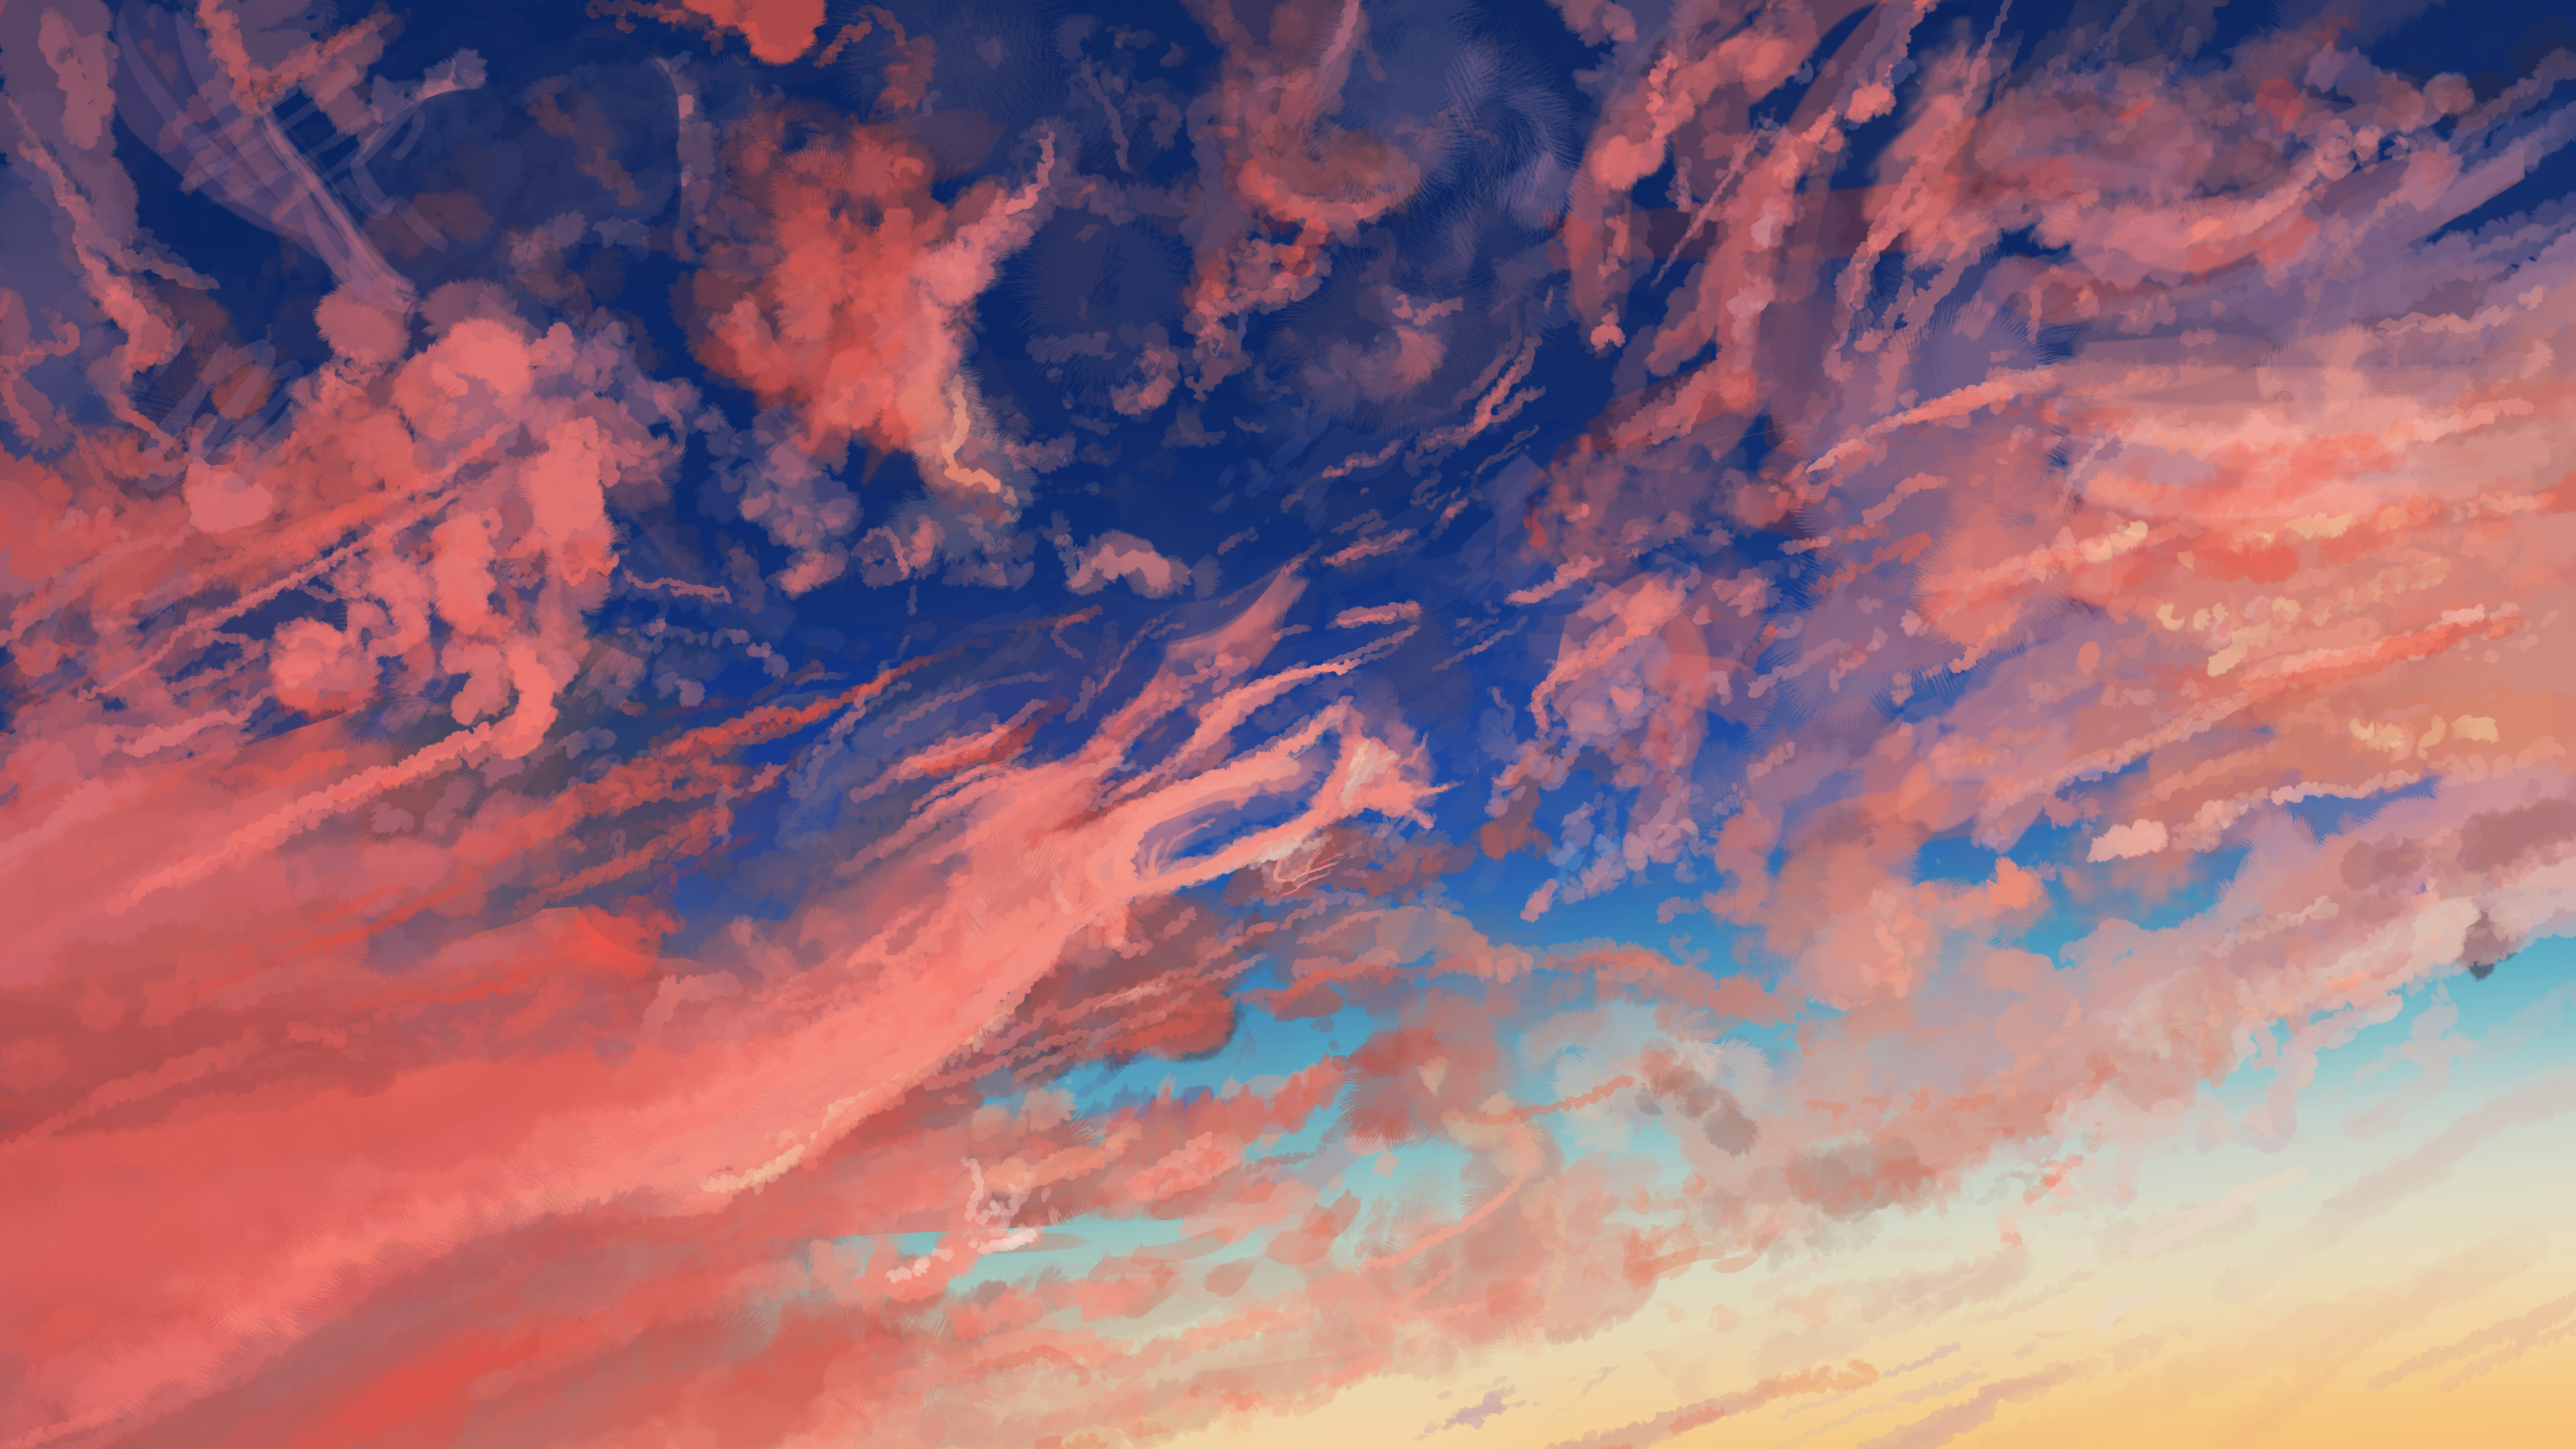 2048x1152 cloud sky anime 2048x1152 resolution hd 4k - Anime background wallpaper 4k ...